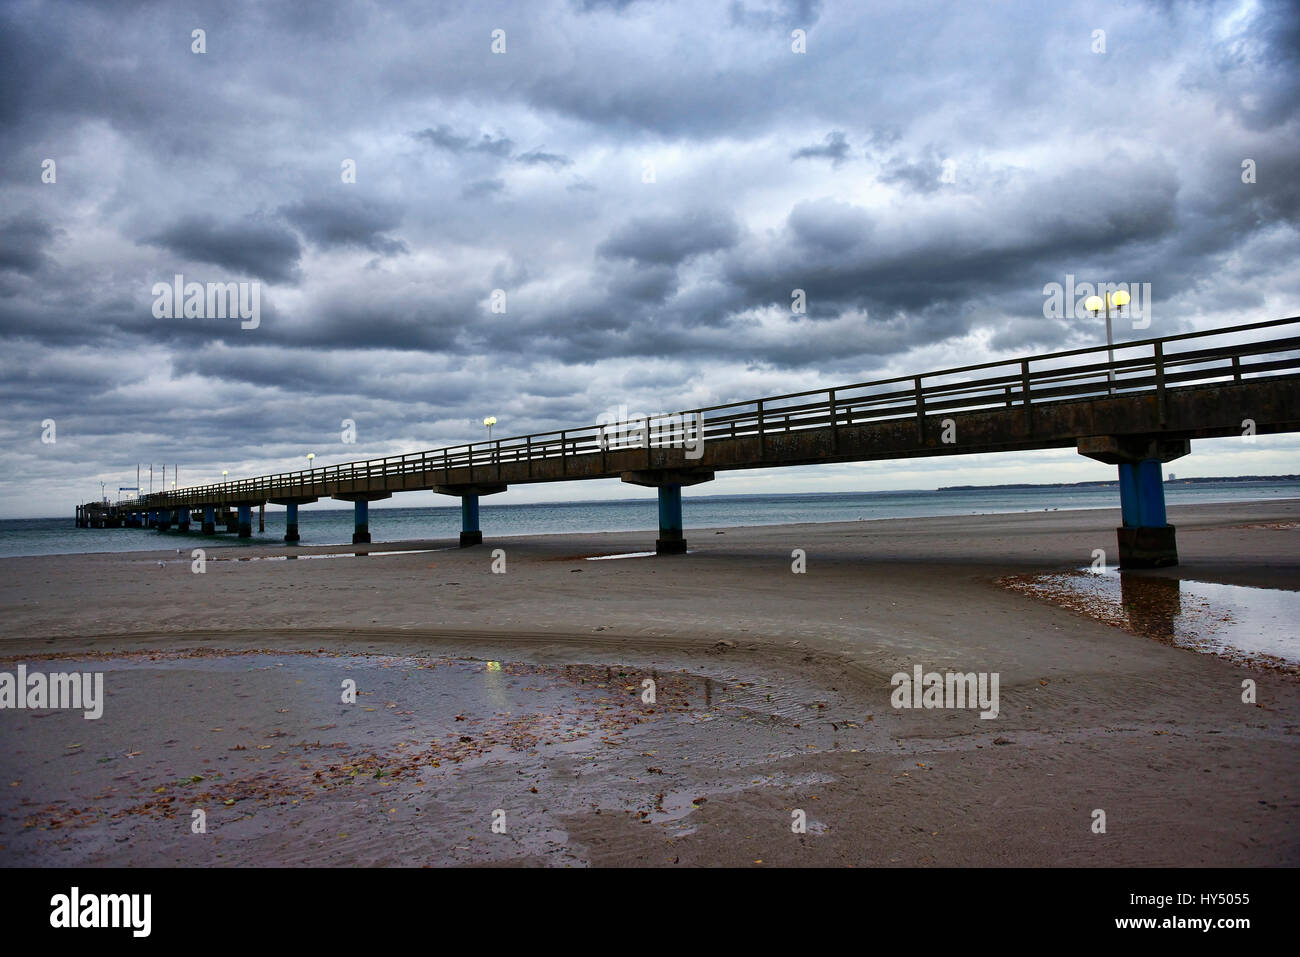 Hurricane low-pressure area Christian on the Baltic Sea in Scharbeutz, Schleswig - Holstein, Germany, Europe, Orkantief Stock Photo